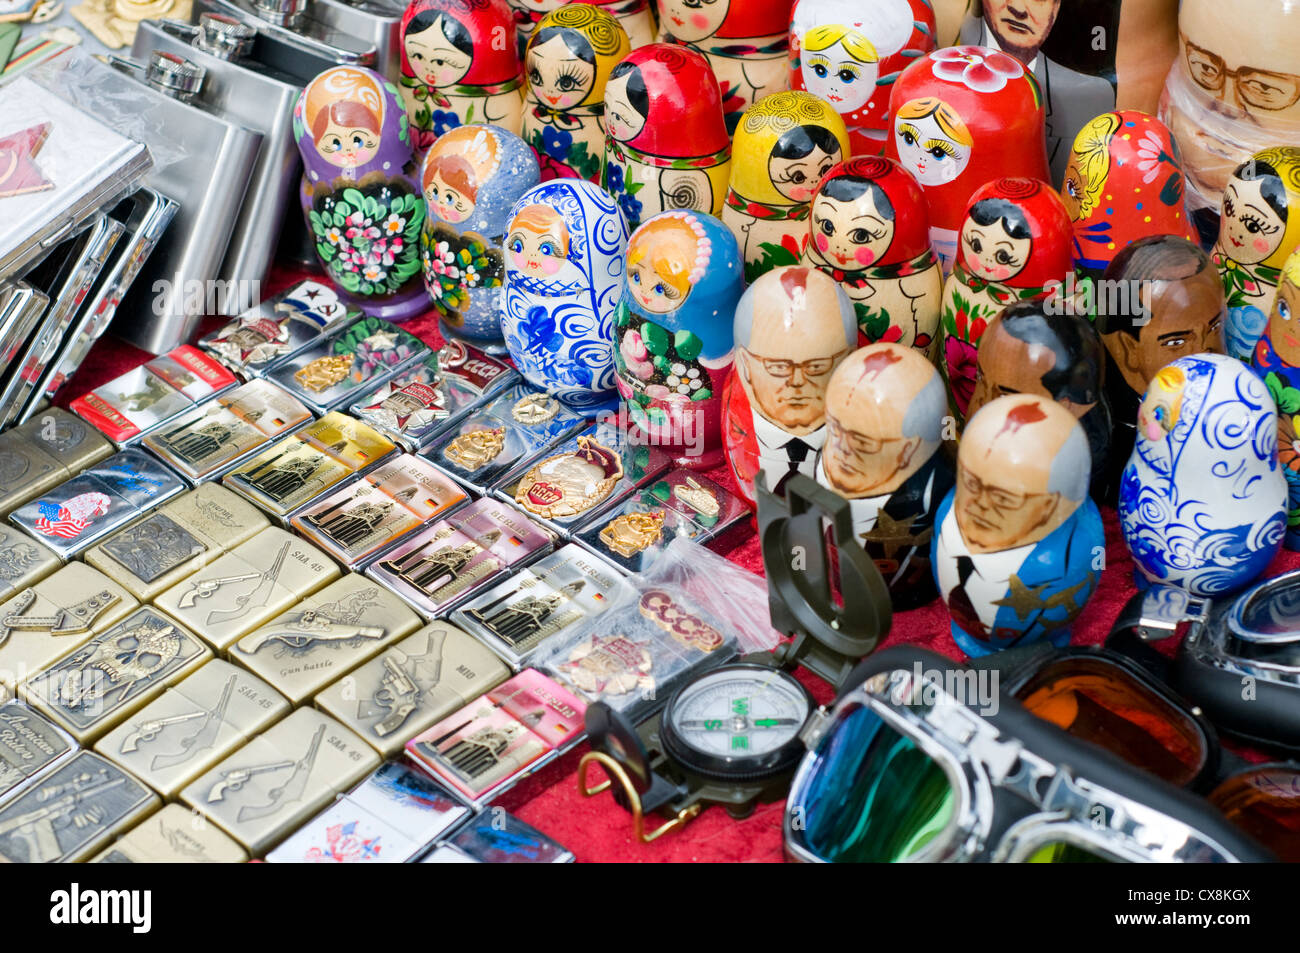 Souvenirs on a street stall near Checkpoint Charlie in Berlin, Germany - Stock Image